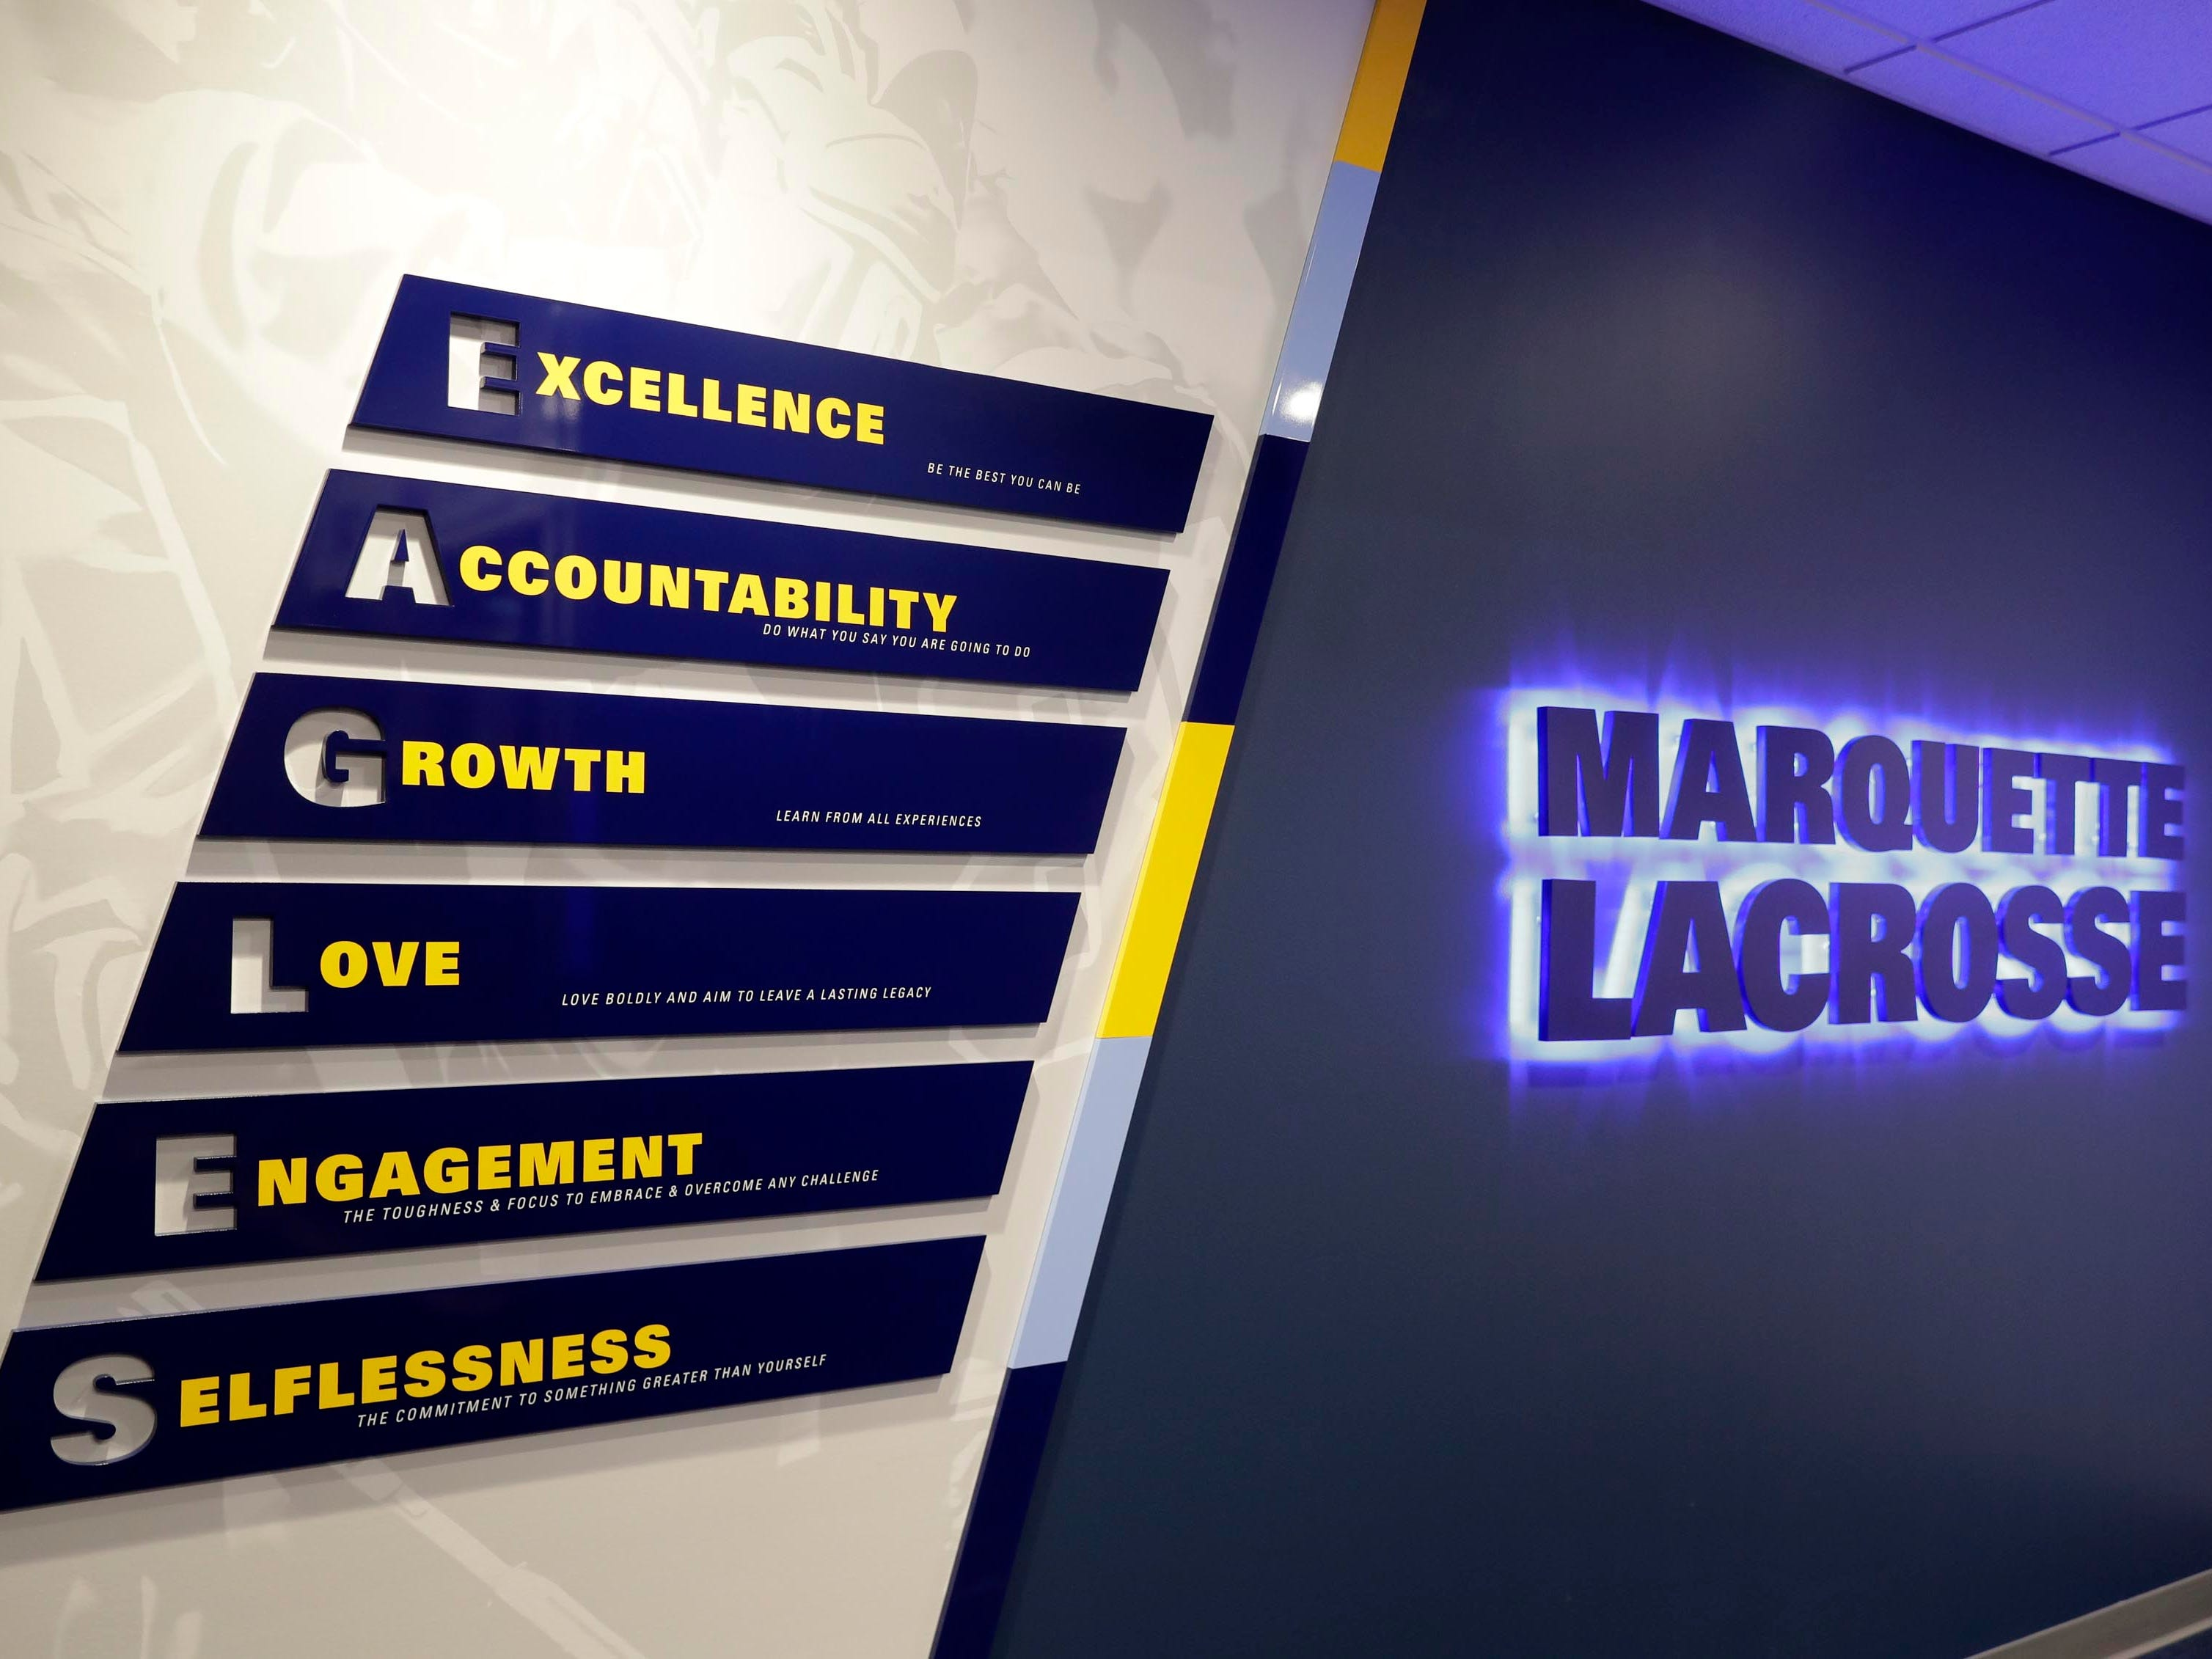 Bright, inspiring signage and messaging is spread throughout the Athletic and Human Performance Research Center at Marquette University.